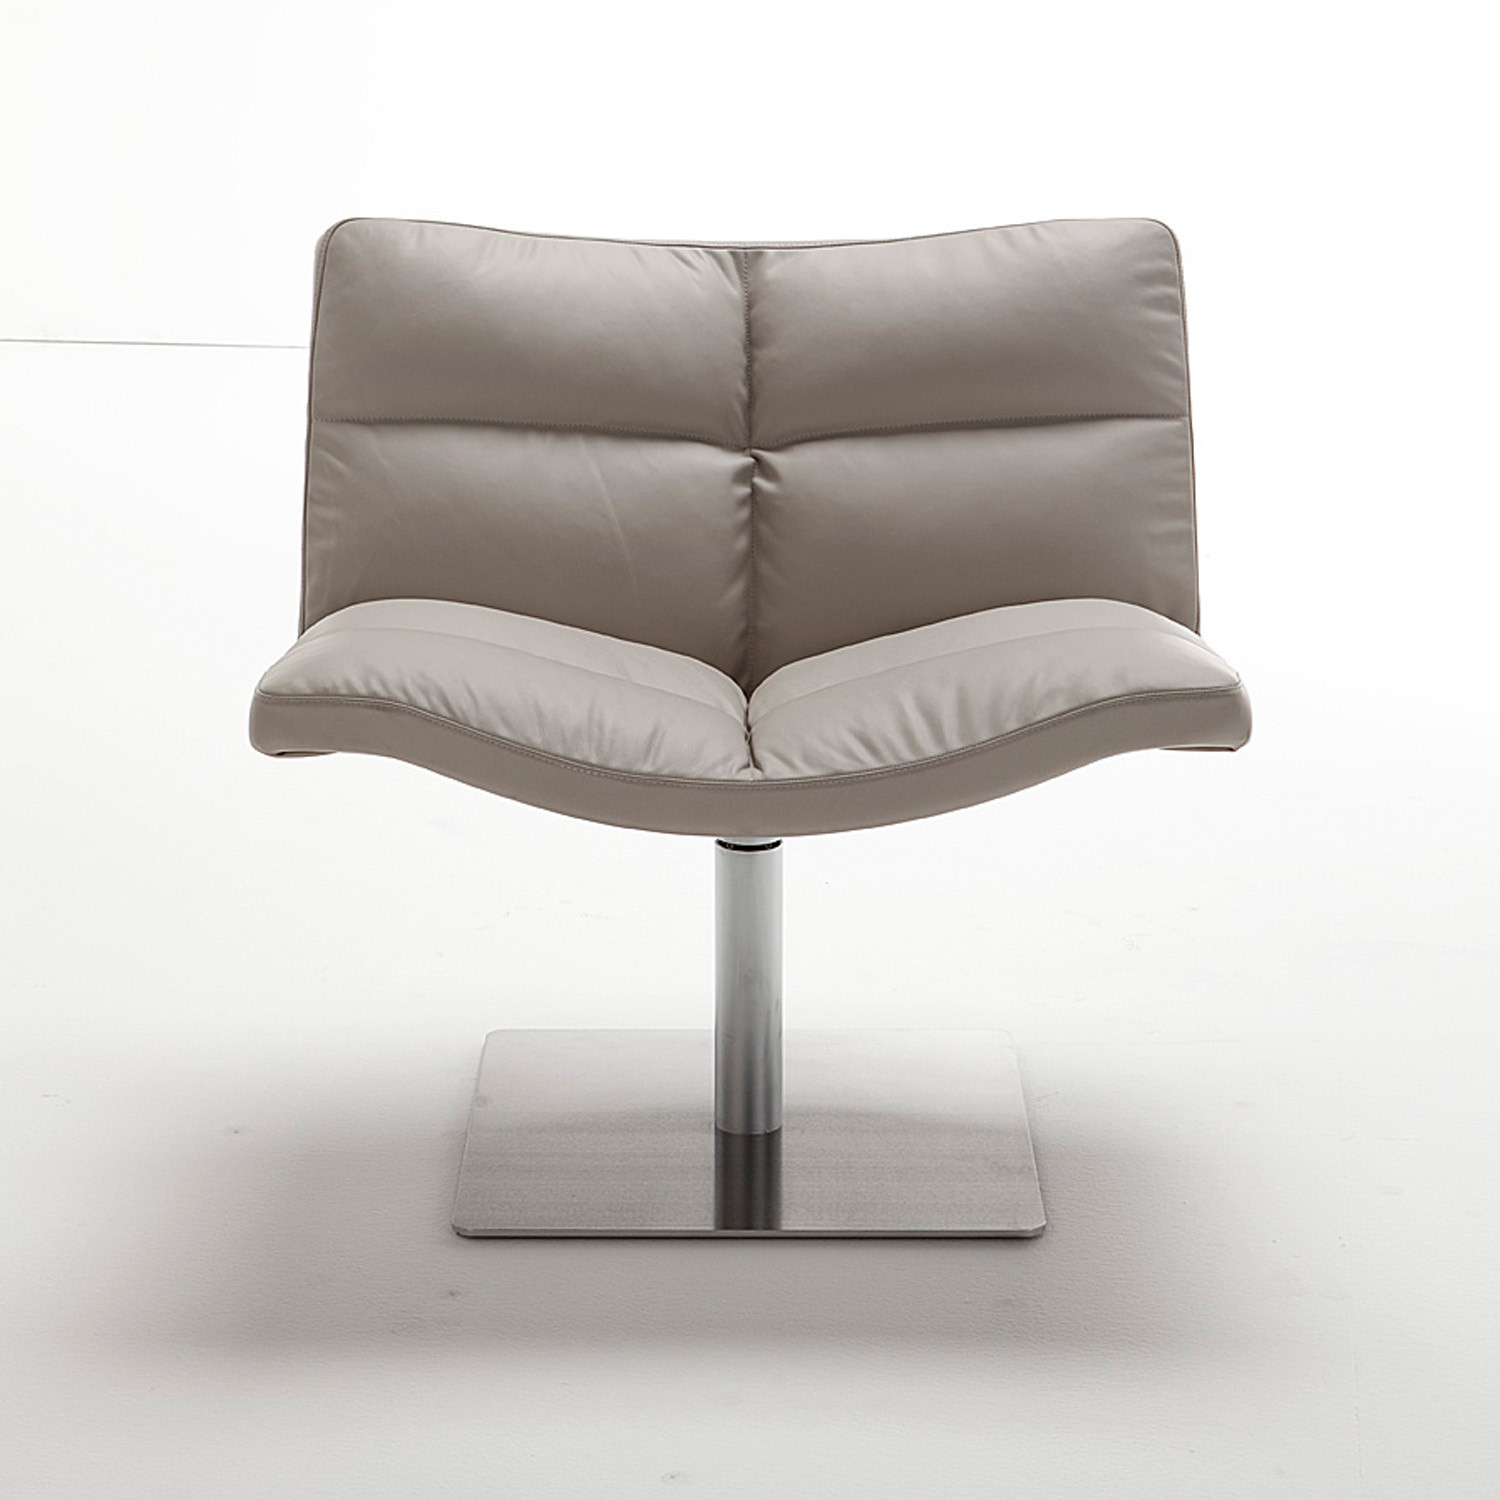 Tonon's Wave Soft Chair